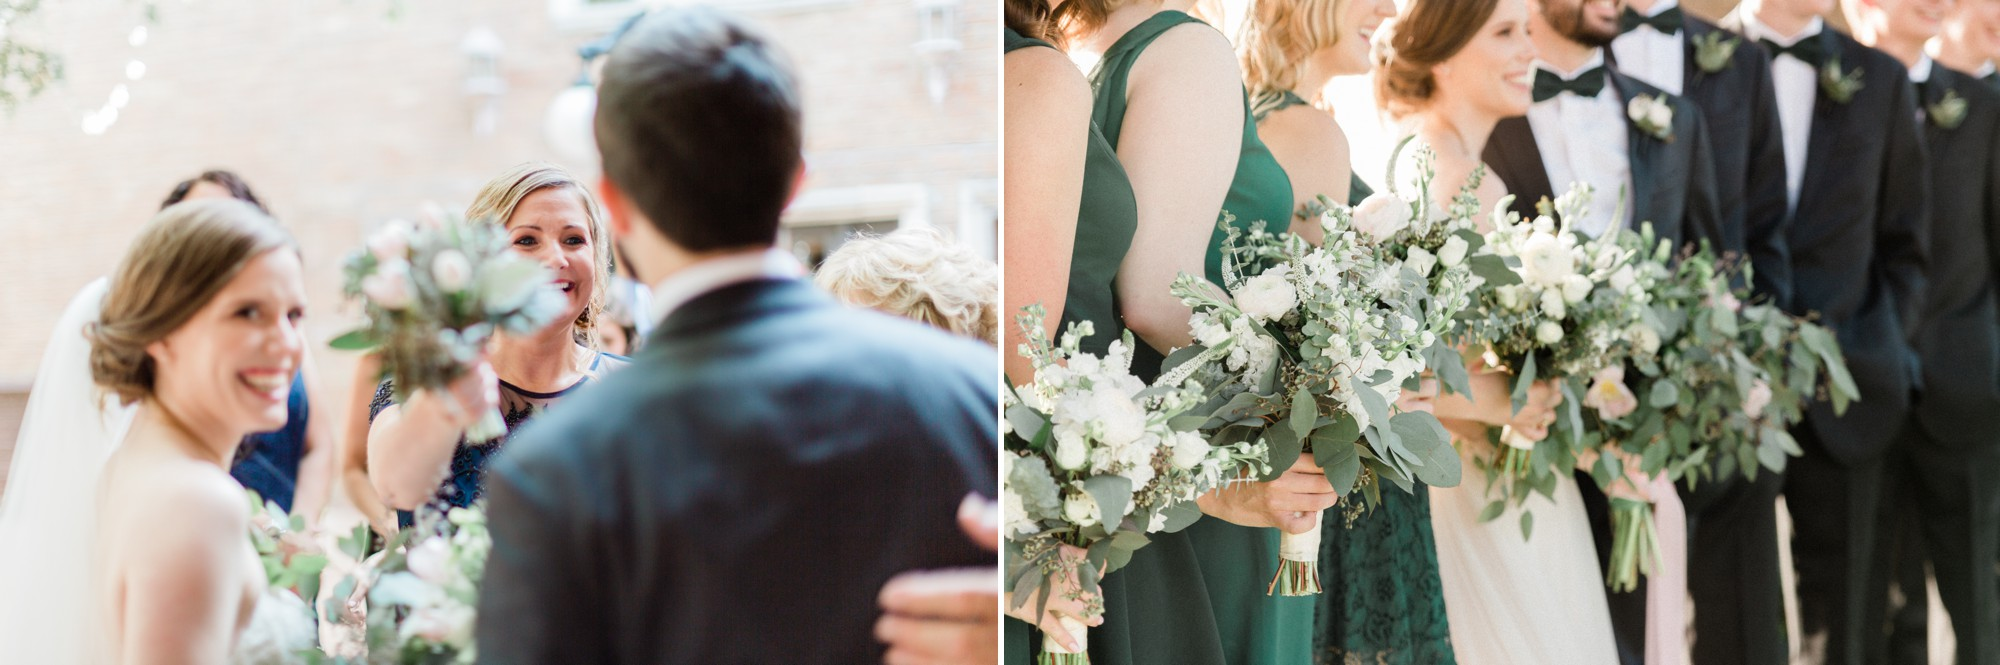 emerald bridesmaid dress, poison ivy floral design, spring wedding photo, the gallery, houston, texas, dreamy elk photography and design